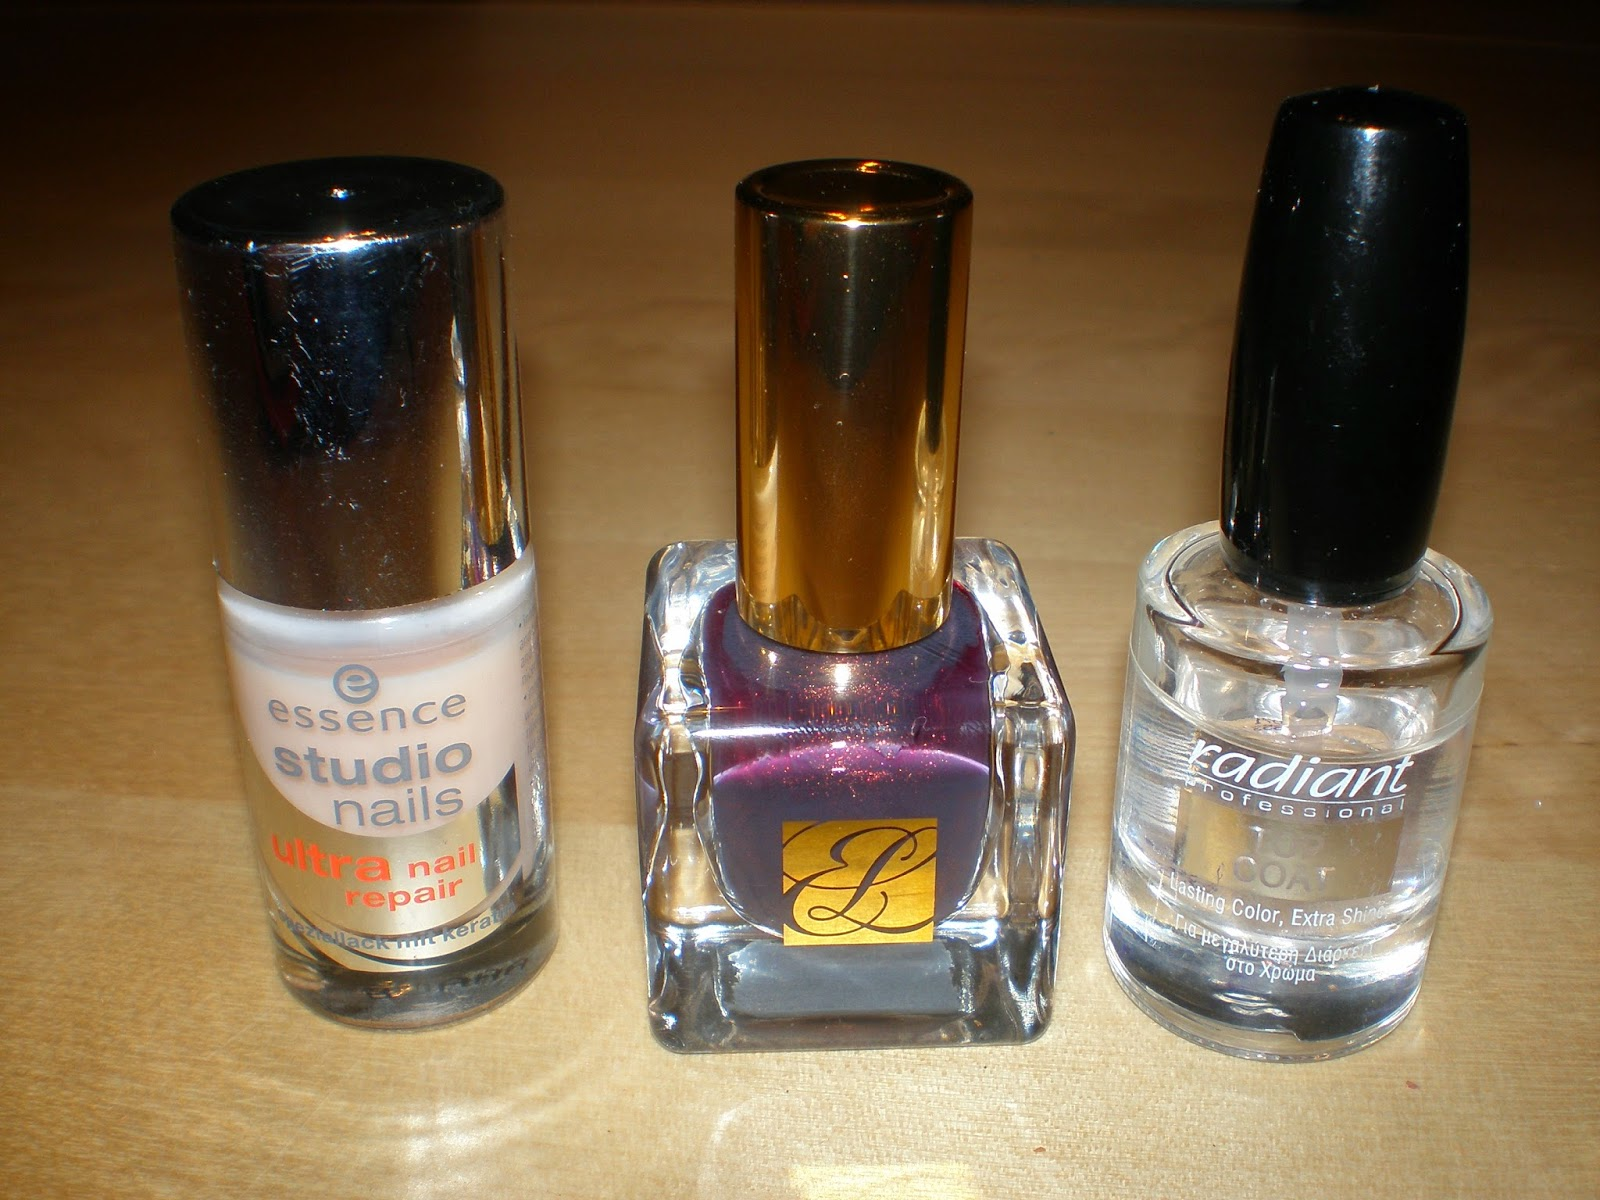 This week's mani with products from Estee Lauder, Essence and Radiant